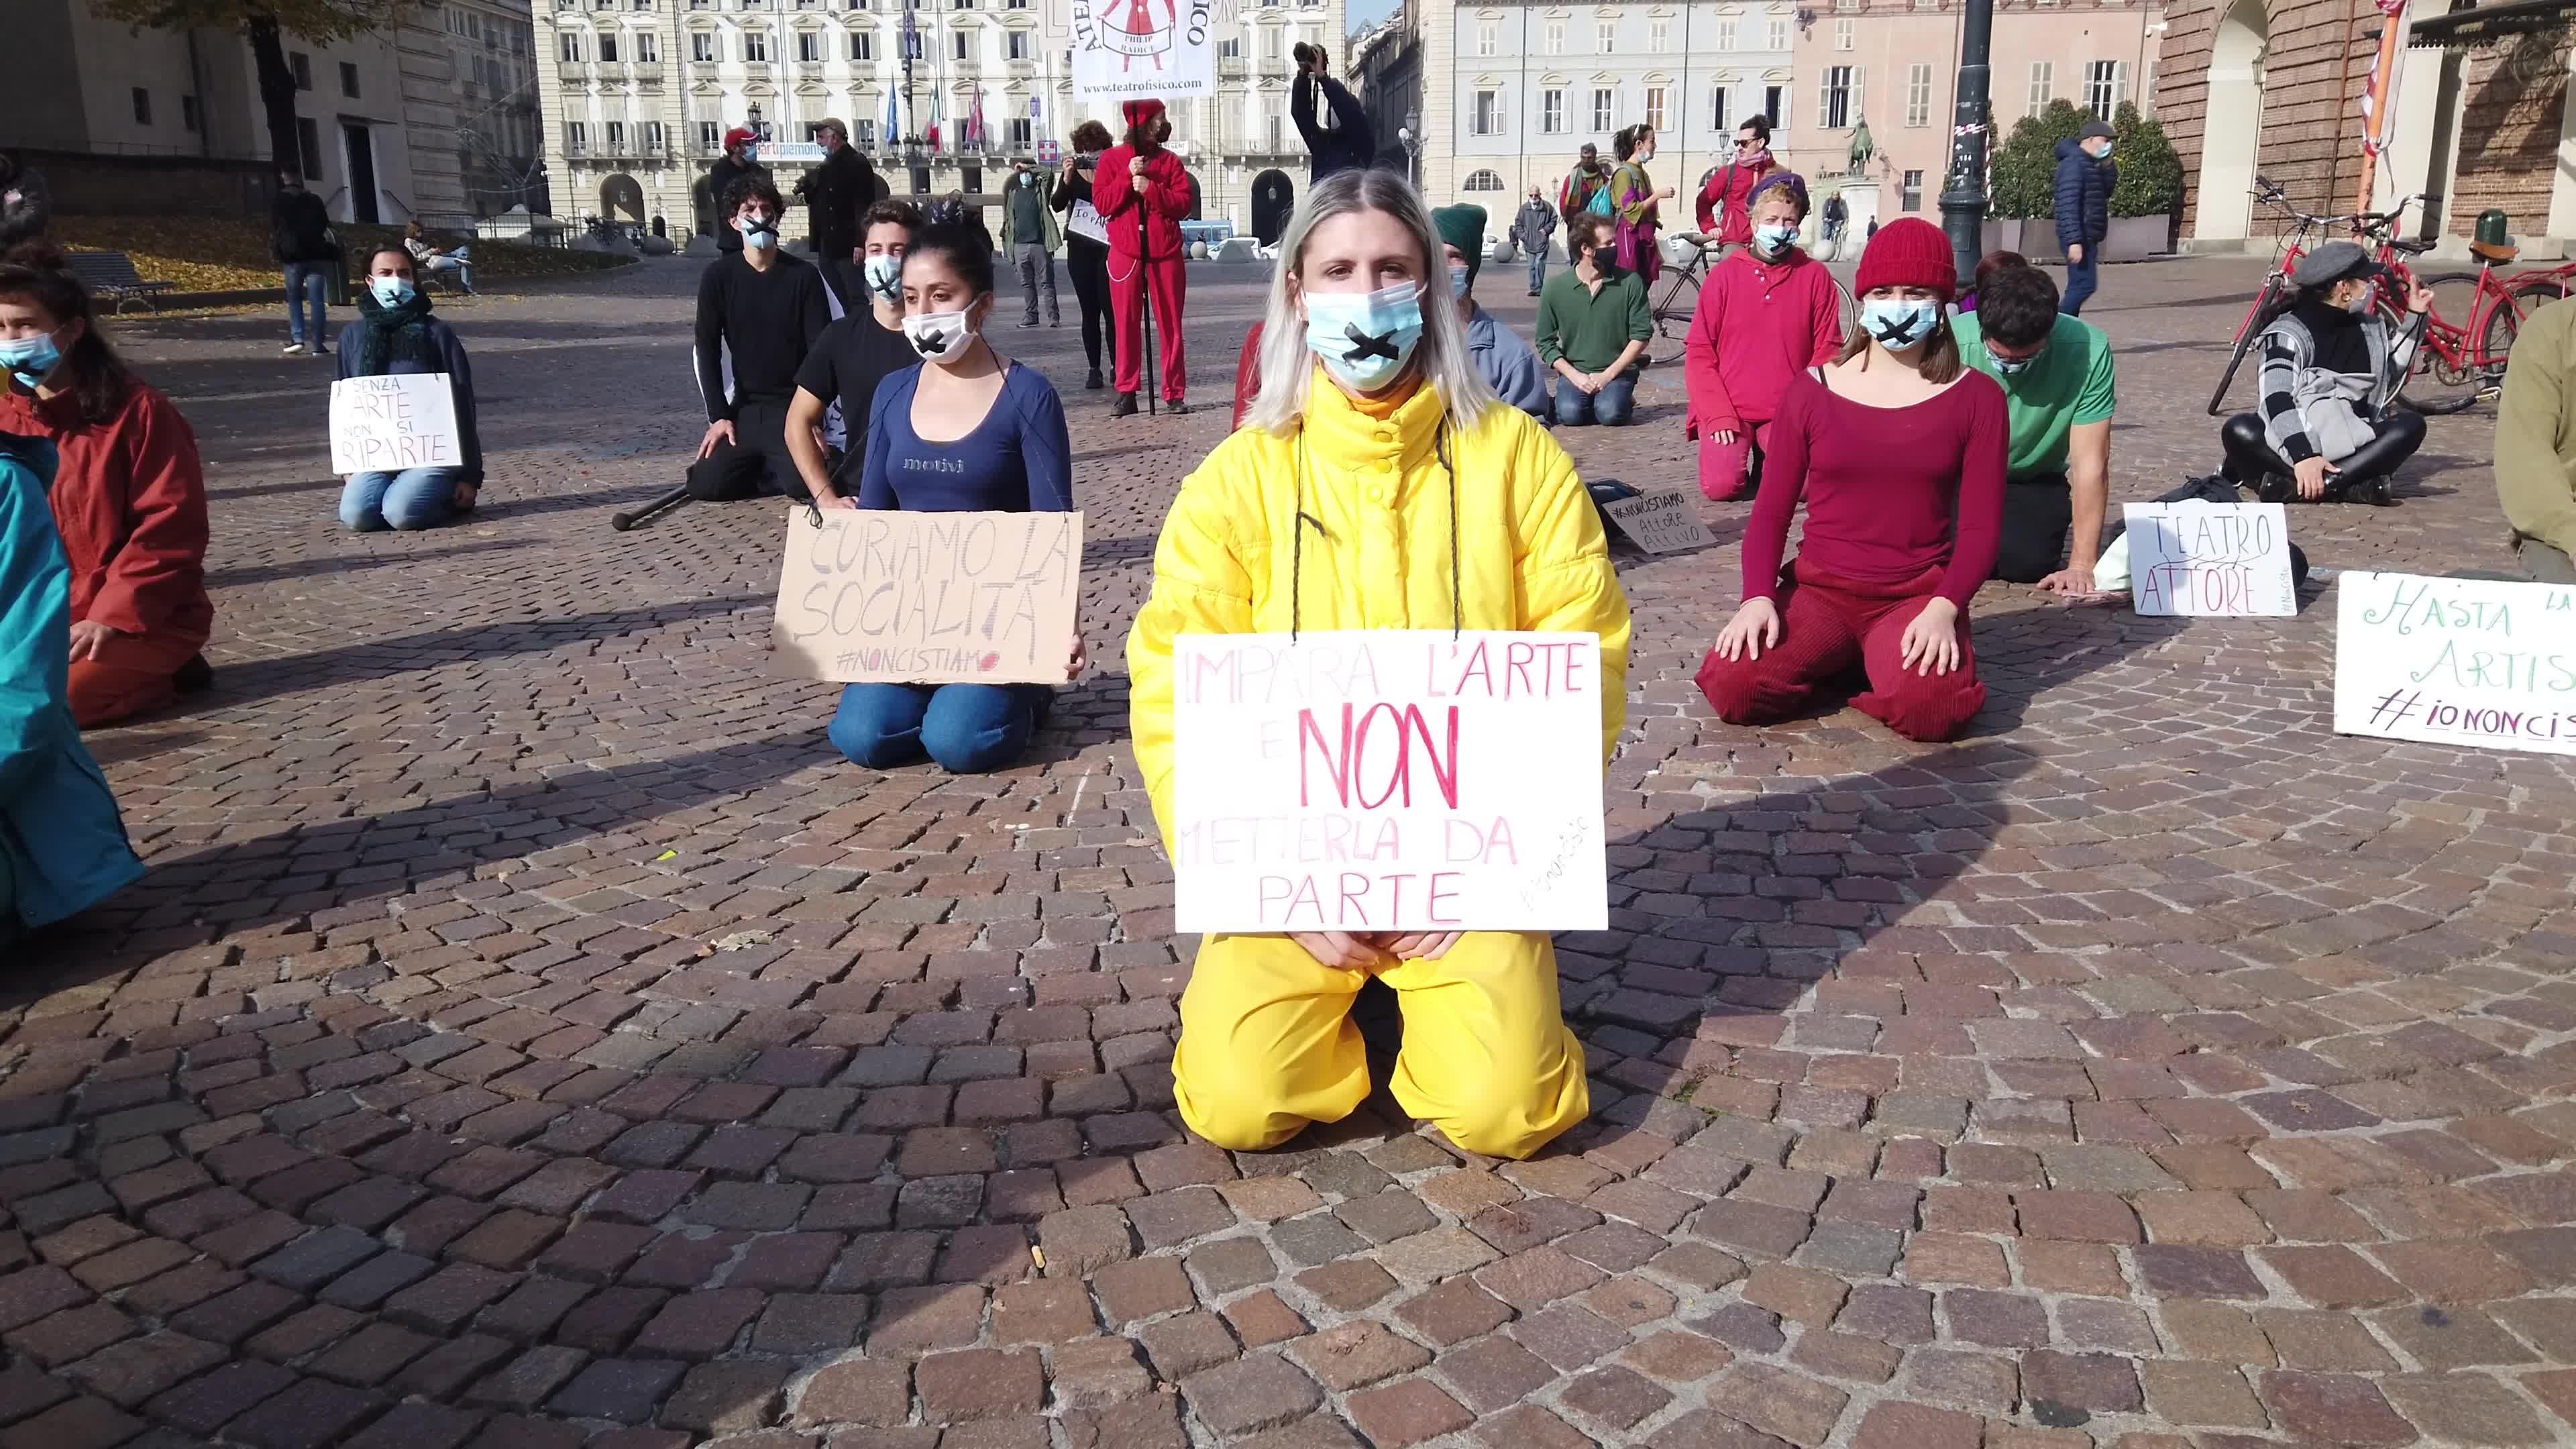 Protests In Italy After Lockdown Measures For Covid-19